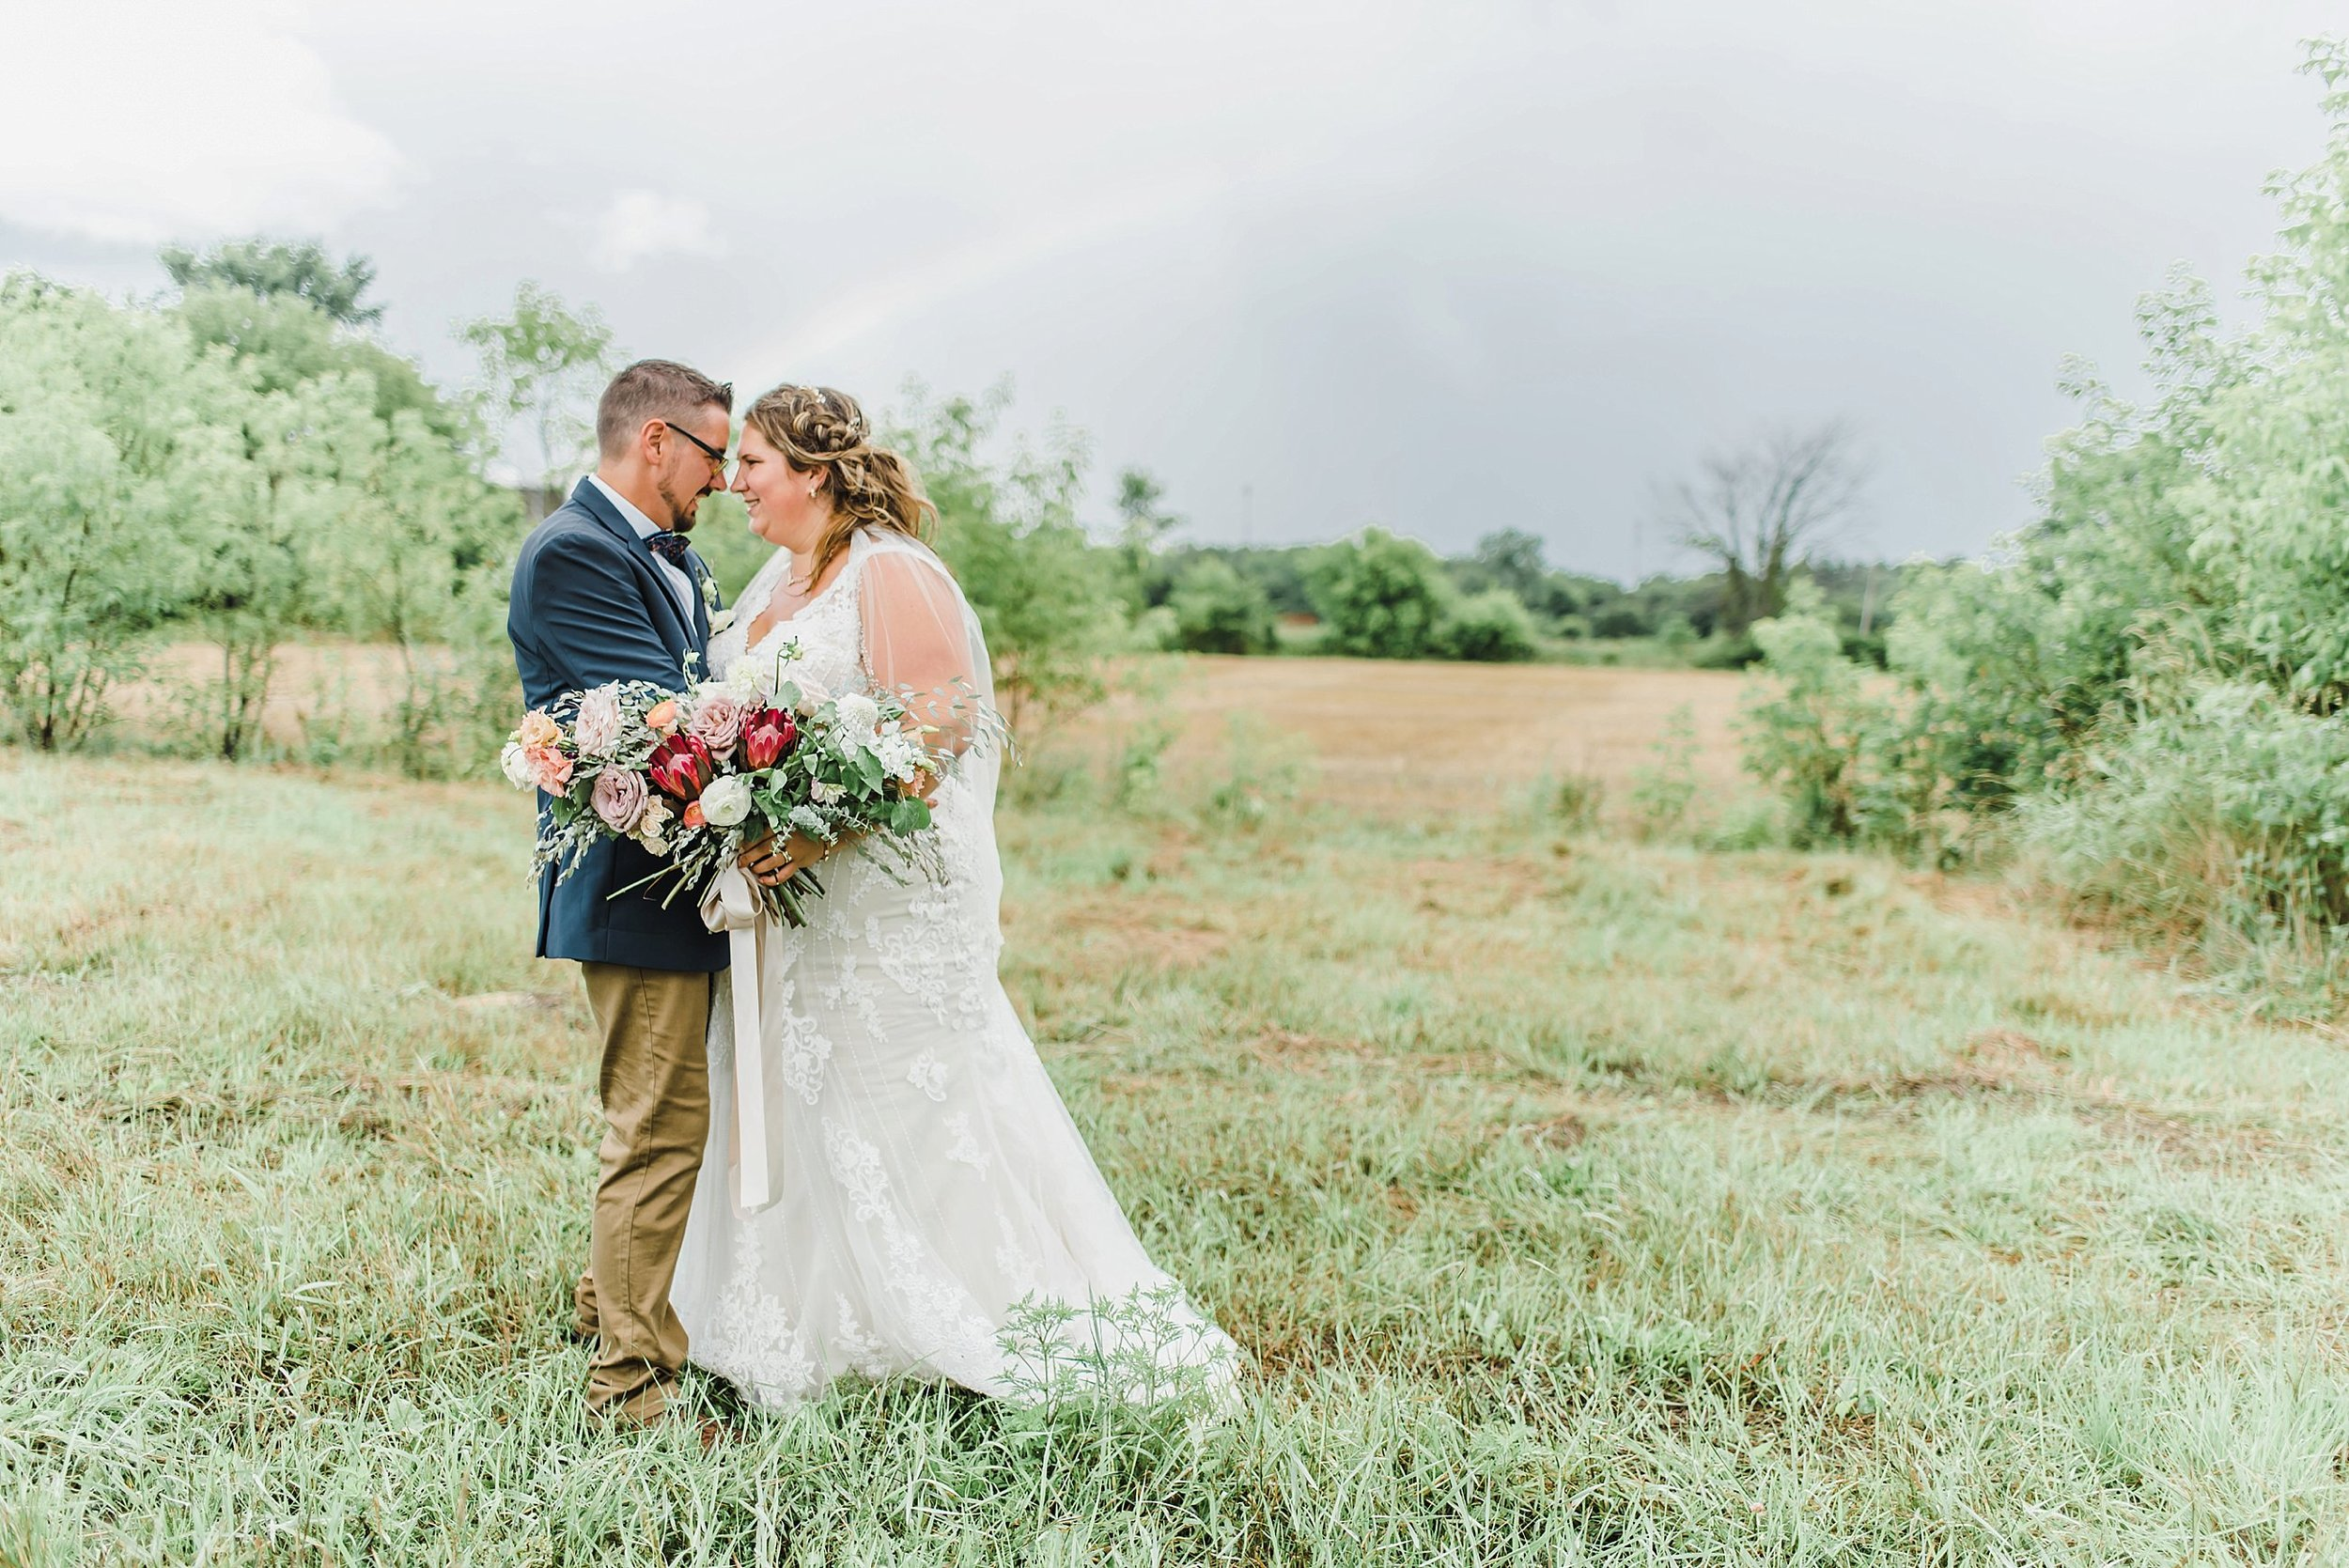 Because of the unpredictable rain throughout the afternoon, we only had a handful of minutes to take Genevieve and Jason's portraits in between downpours!  Here is just some of the beauty we got!